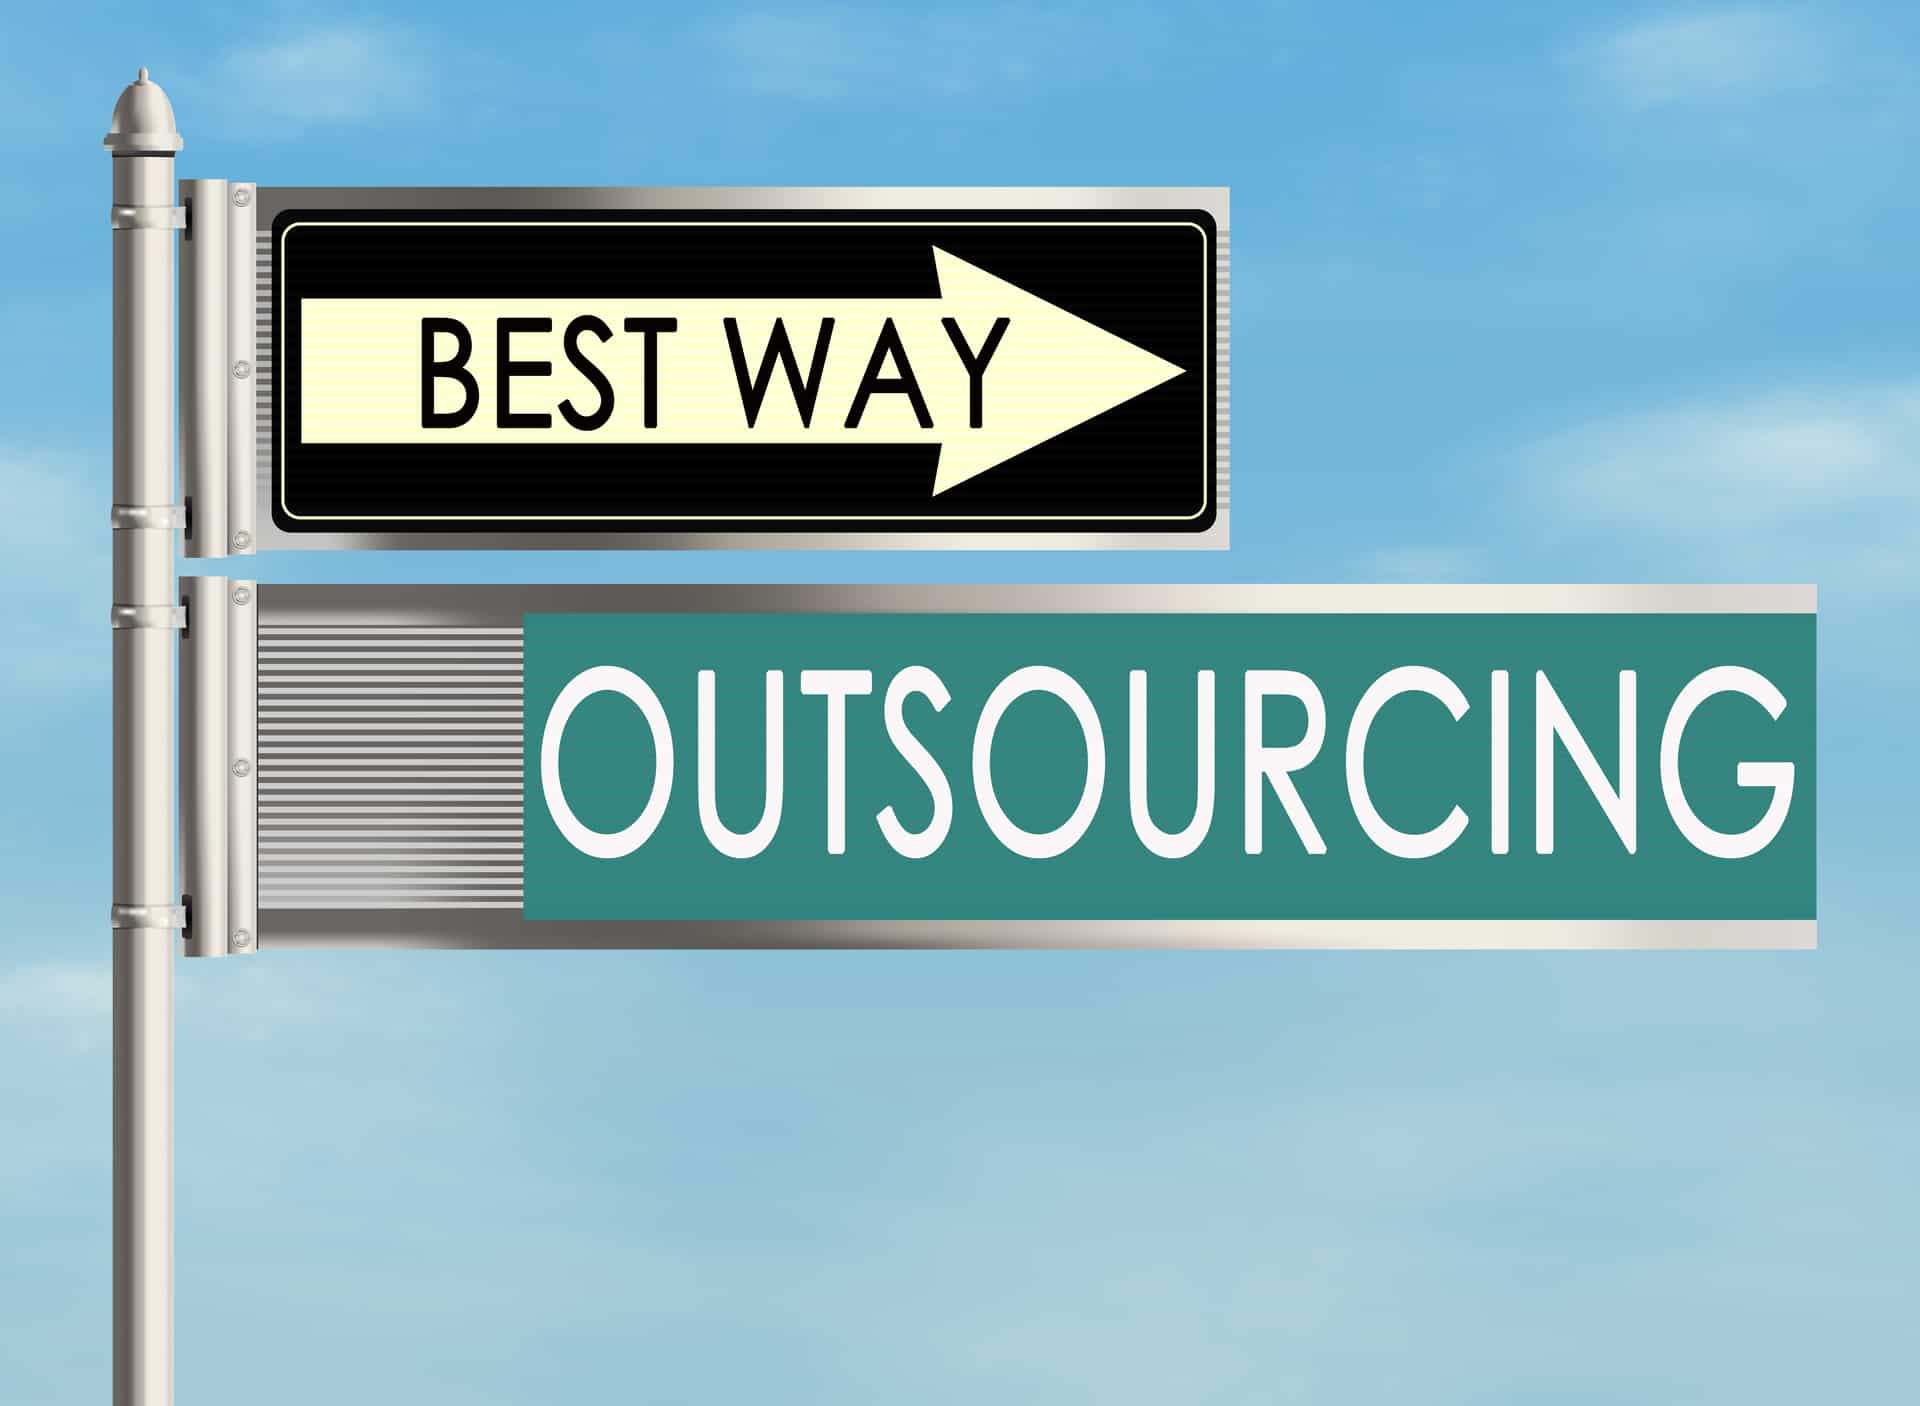 Scale Your Business by Outsourcing